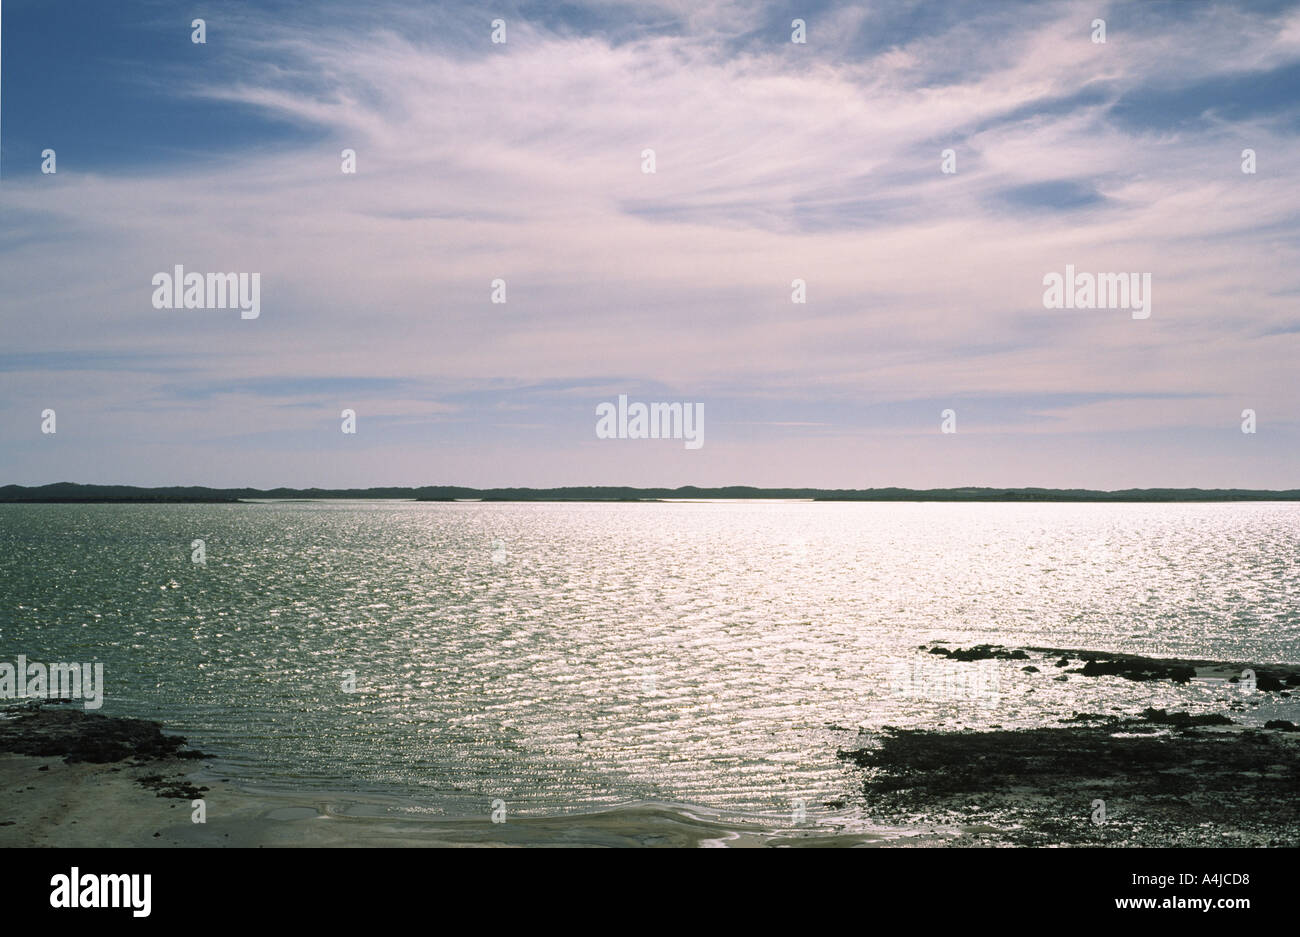 The Coorong South Australia Saltwater lagoon with seabirds flying over water - Stock Image